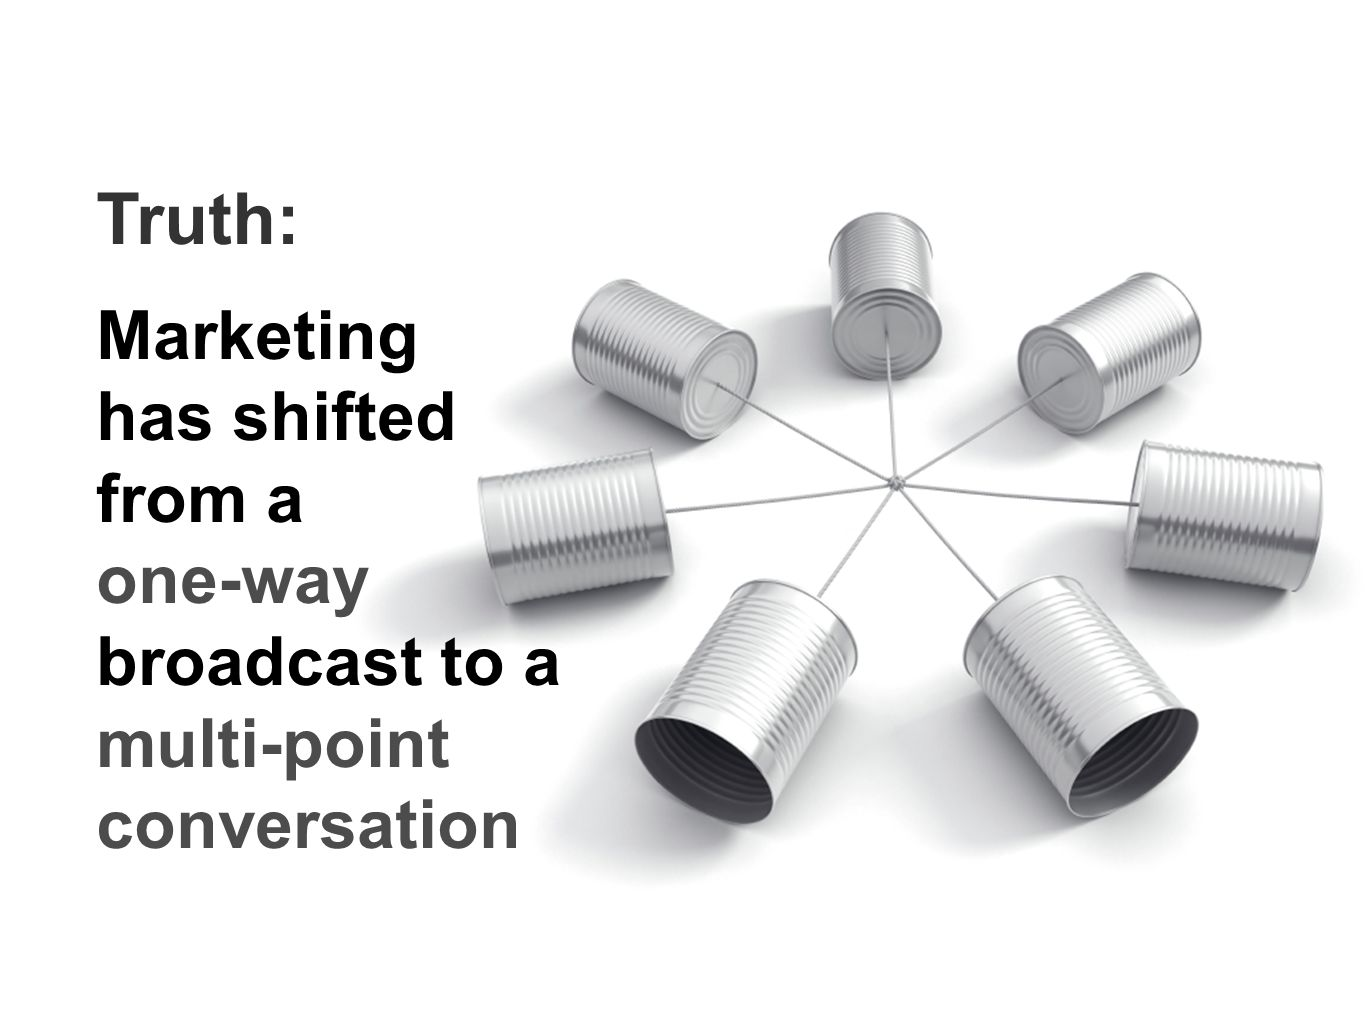 Truth: Marketing has shifted from a one-way broadcast to a multi-point conversation